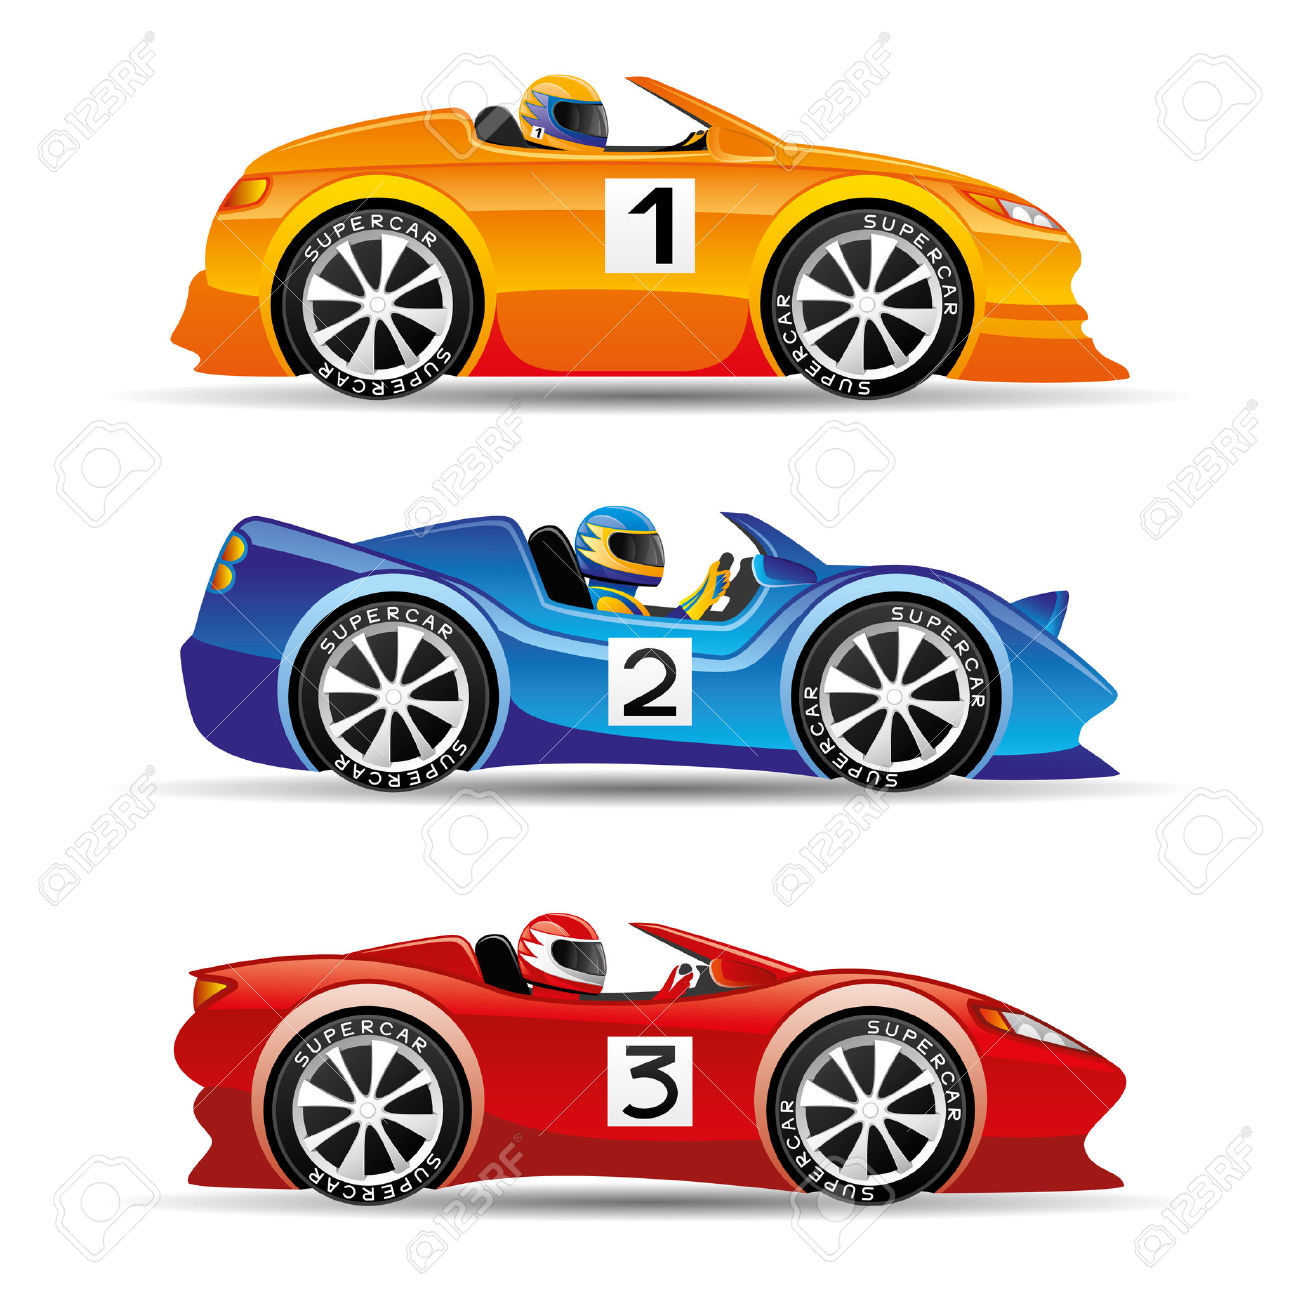 Racecars clipart clip royalty free stock Race cars clipart 2 » Clipart Station clip royalty free stock